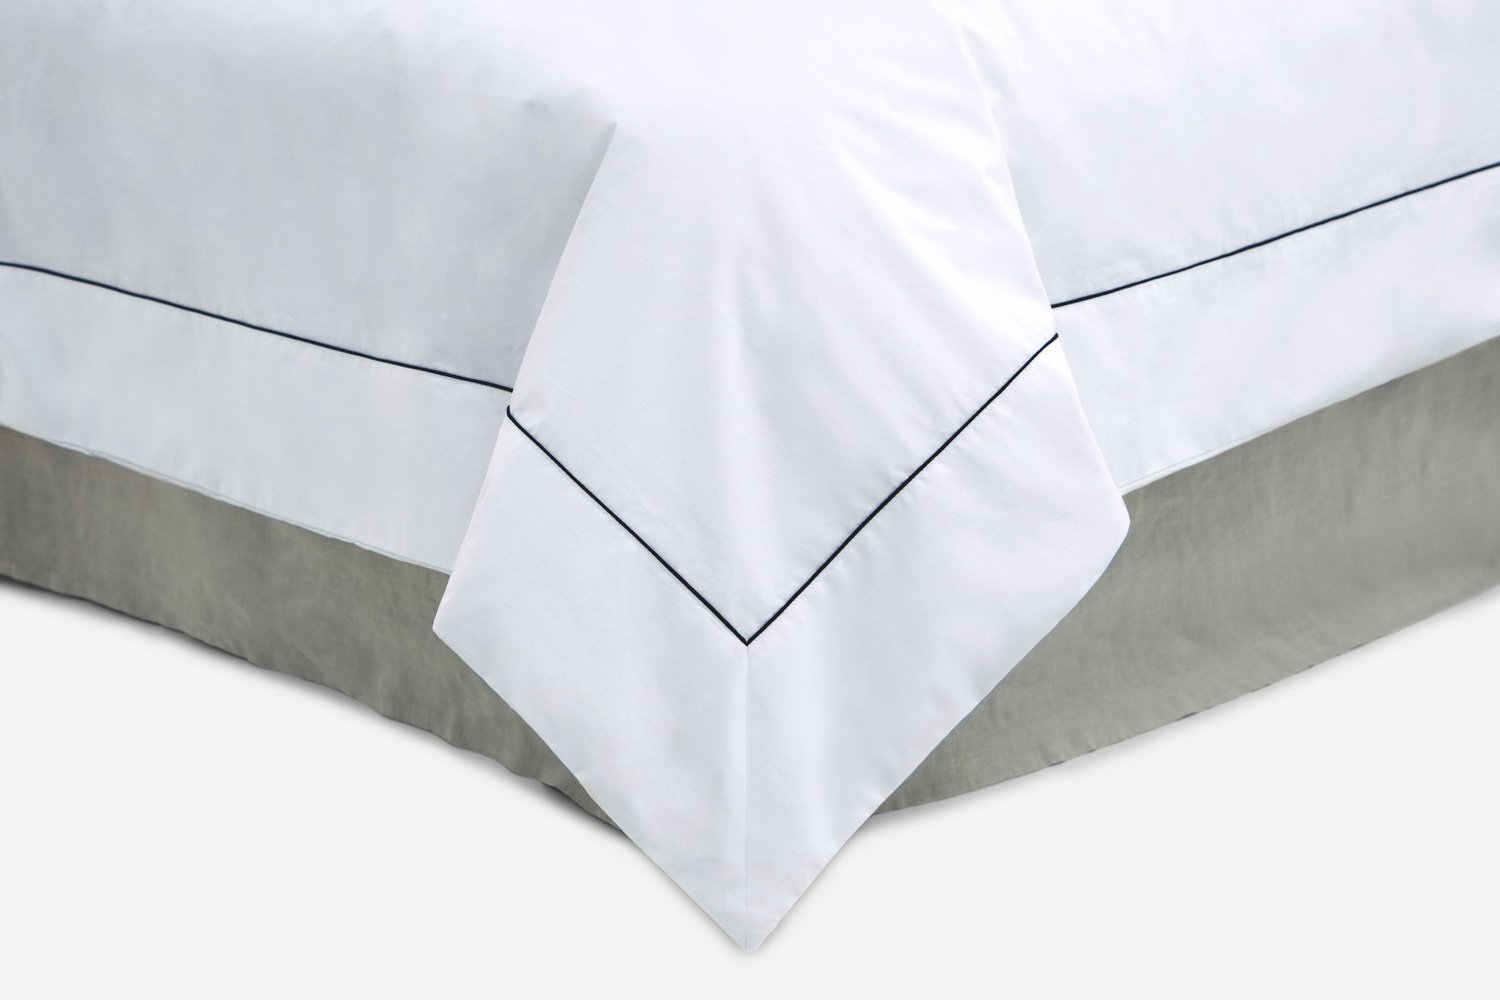 cotton percale duvet cover in white with black piping